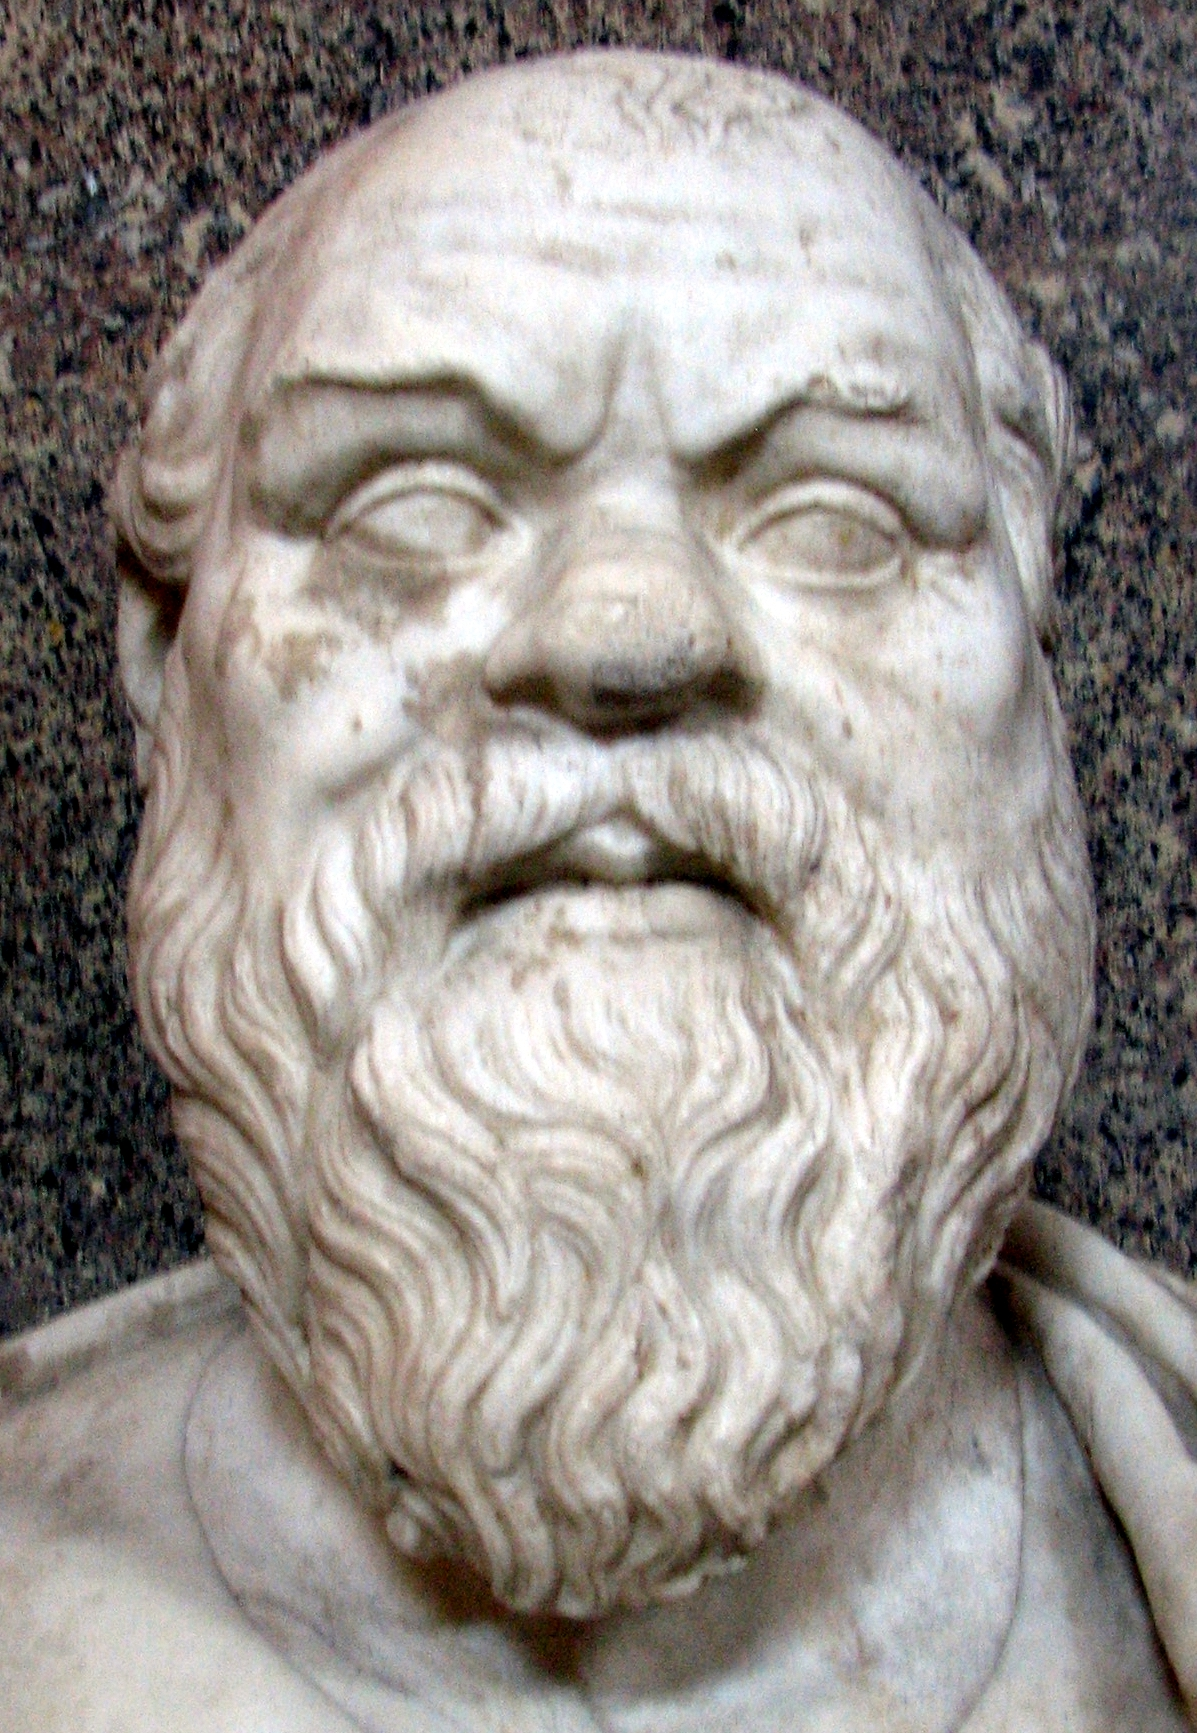 Opinions on Socrates